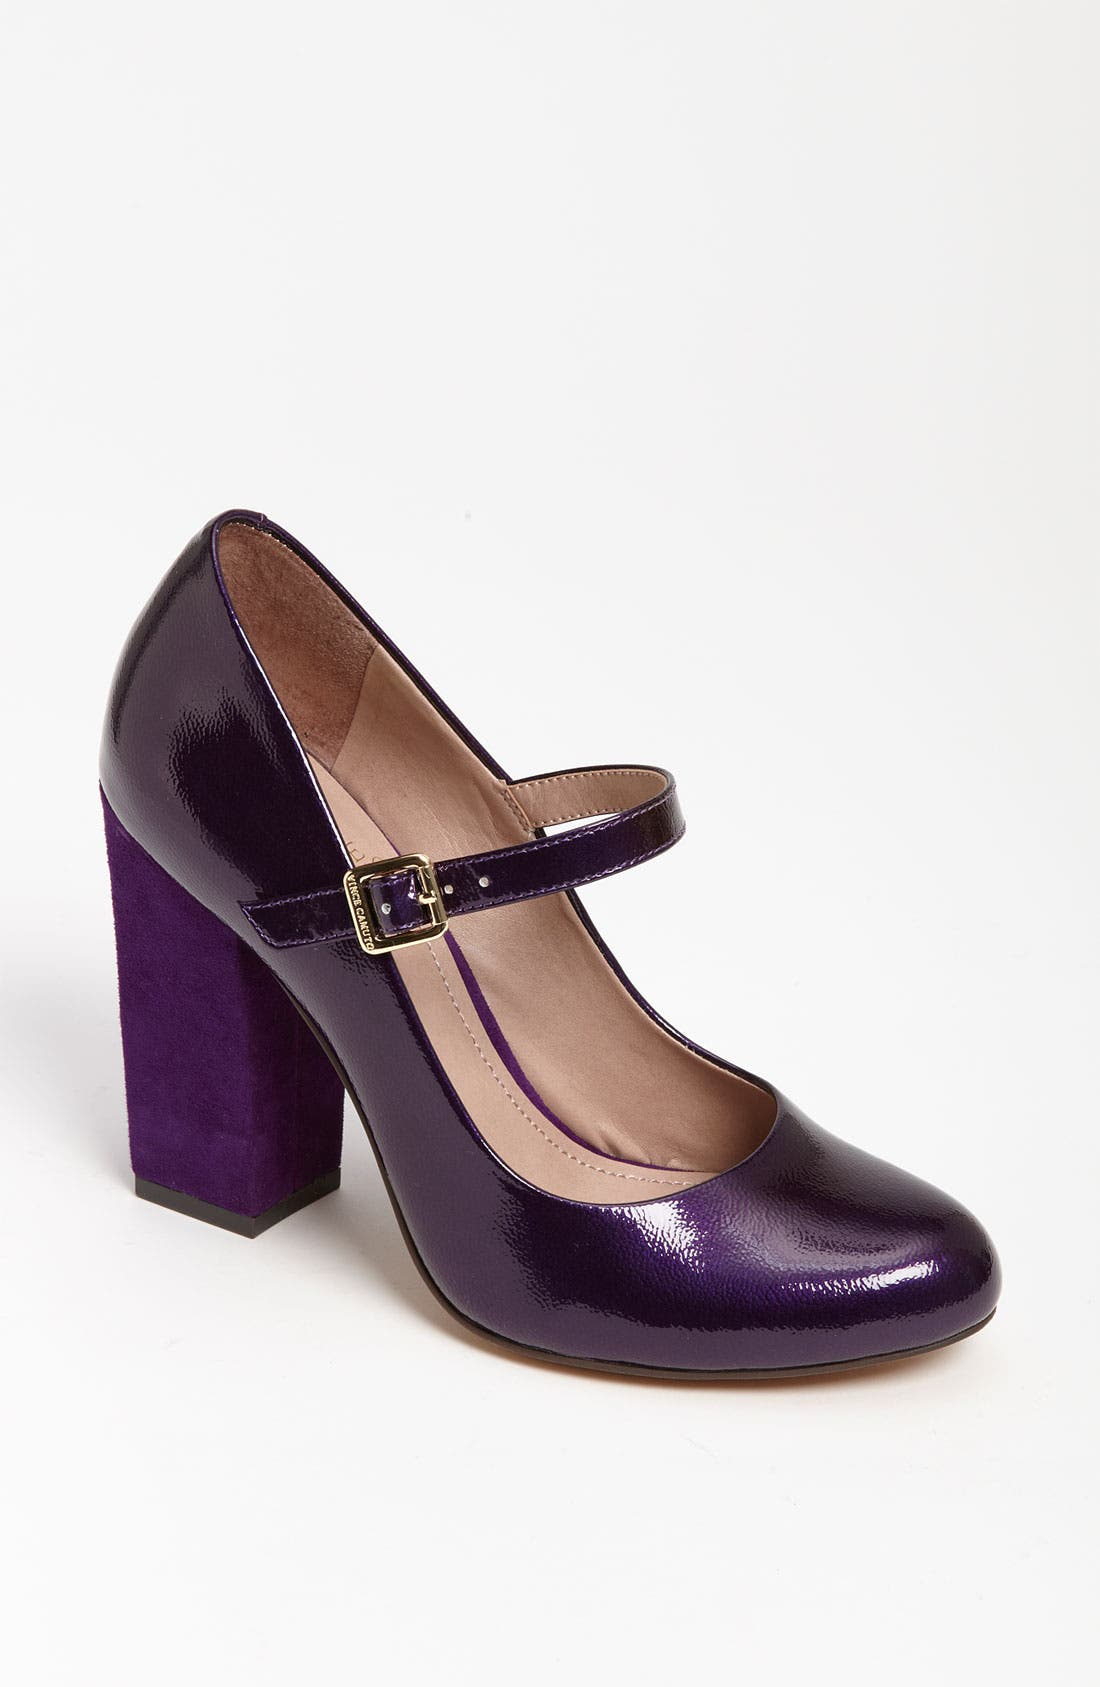 Alternate Image 1 Selected - Vince Camuto 'Vionet' Pump